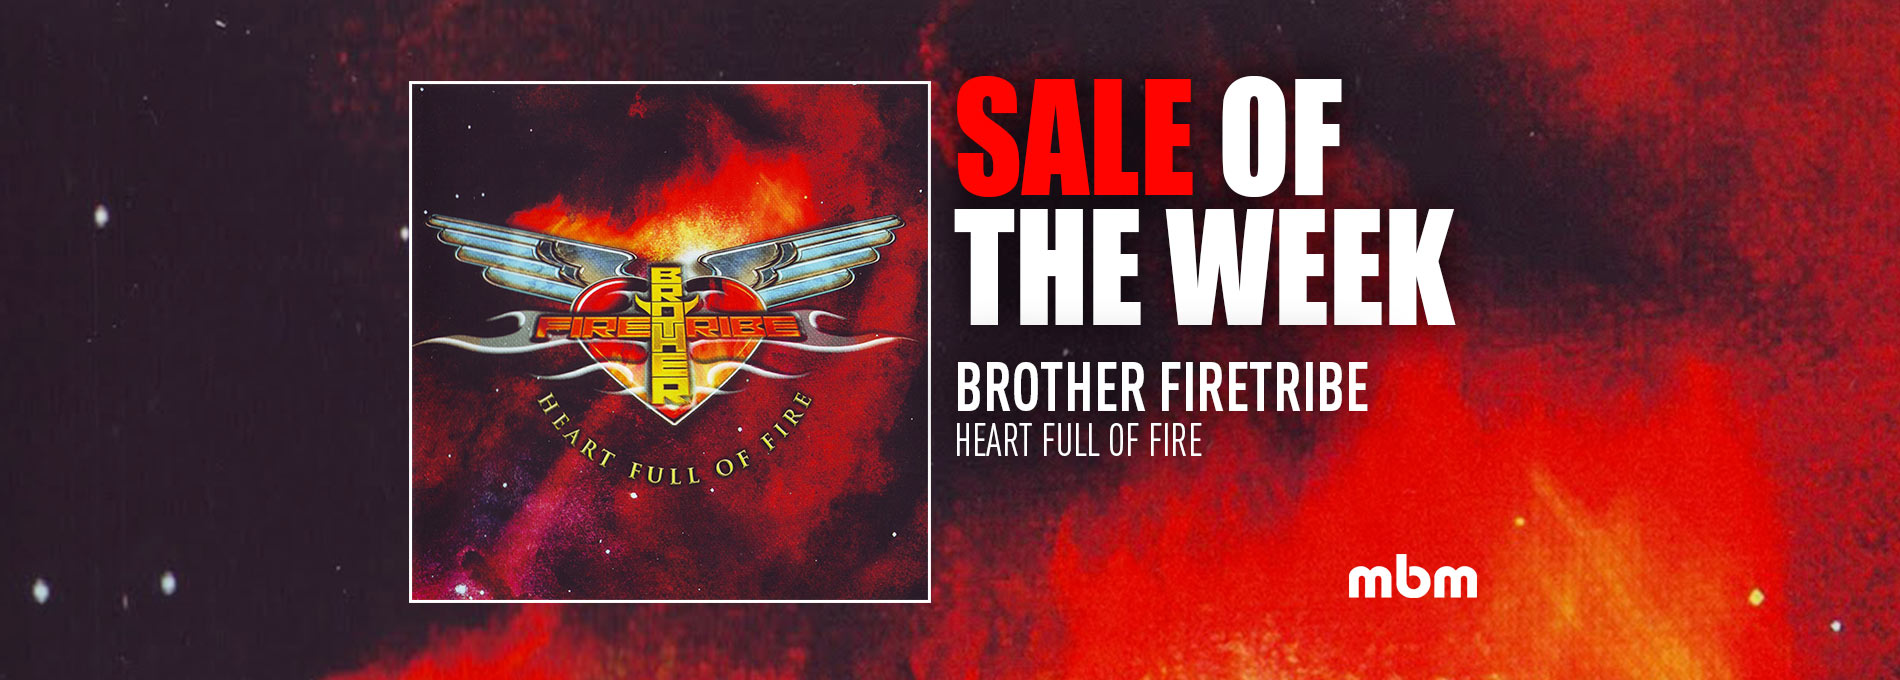 Sale Of the Week : Brother Firetribe - Heart Full Of Fire